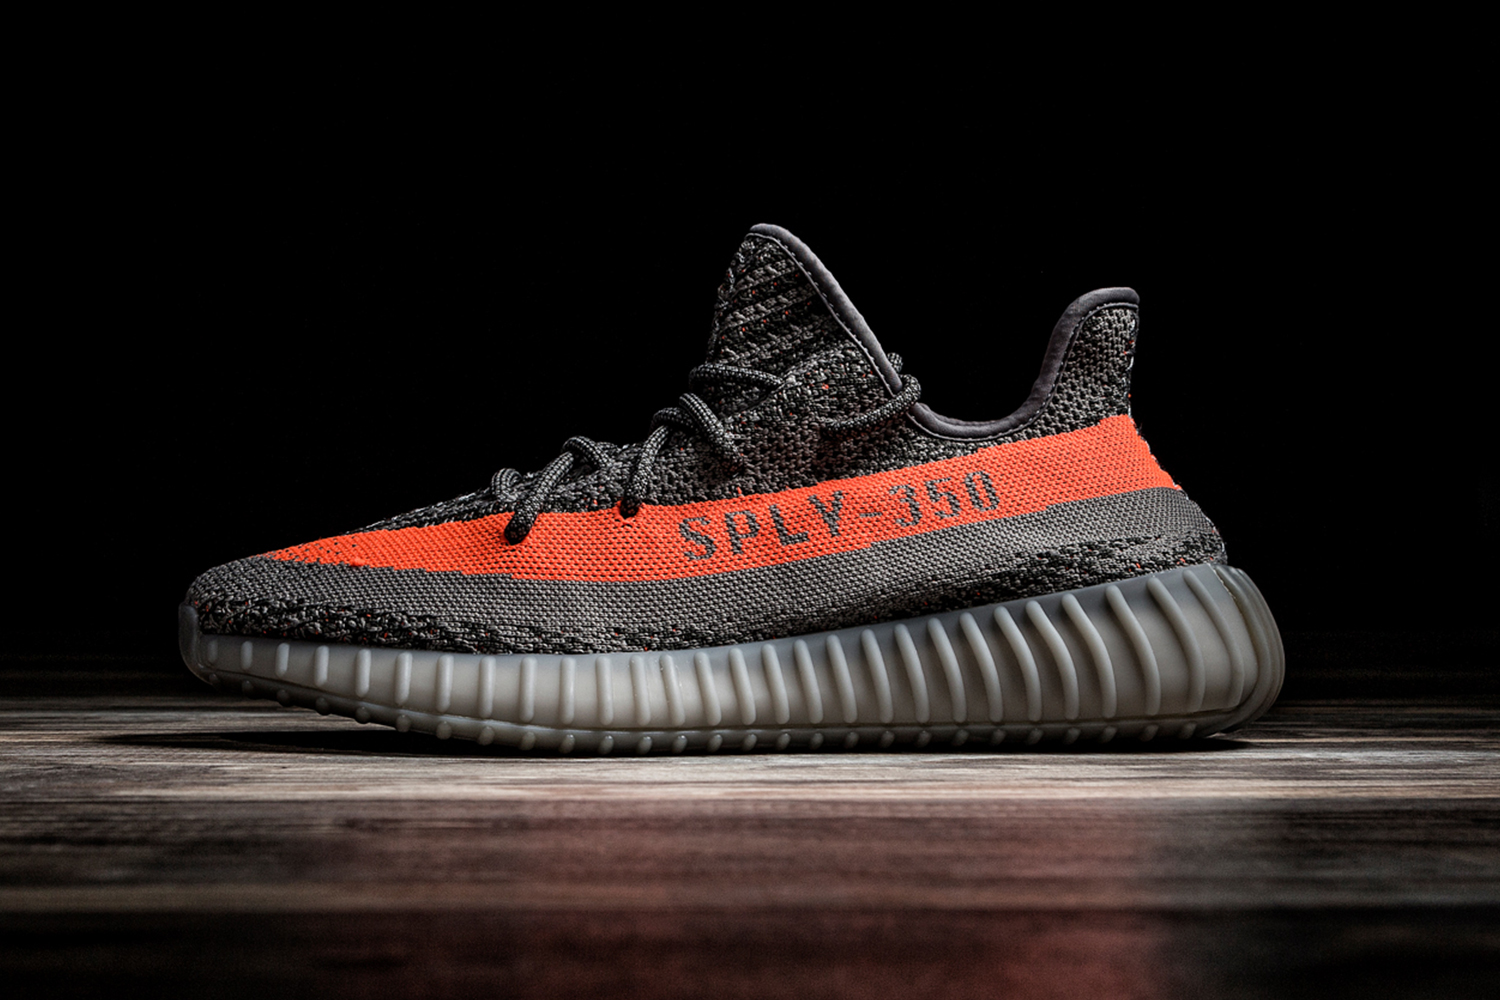 Adidas Yeezy 350 V 2 Core Black Copper Unboxing On Feet Review